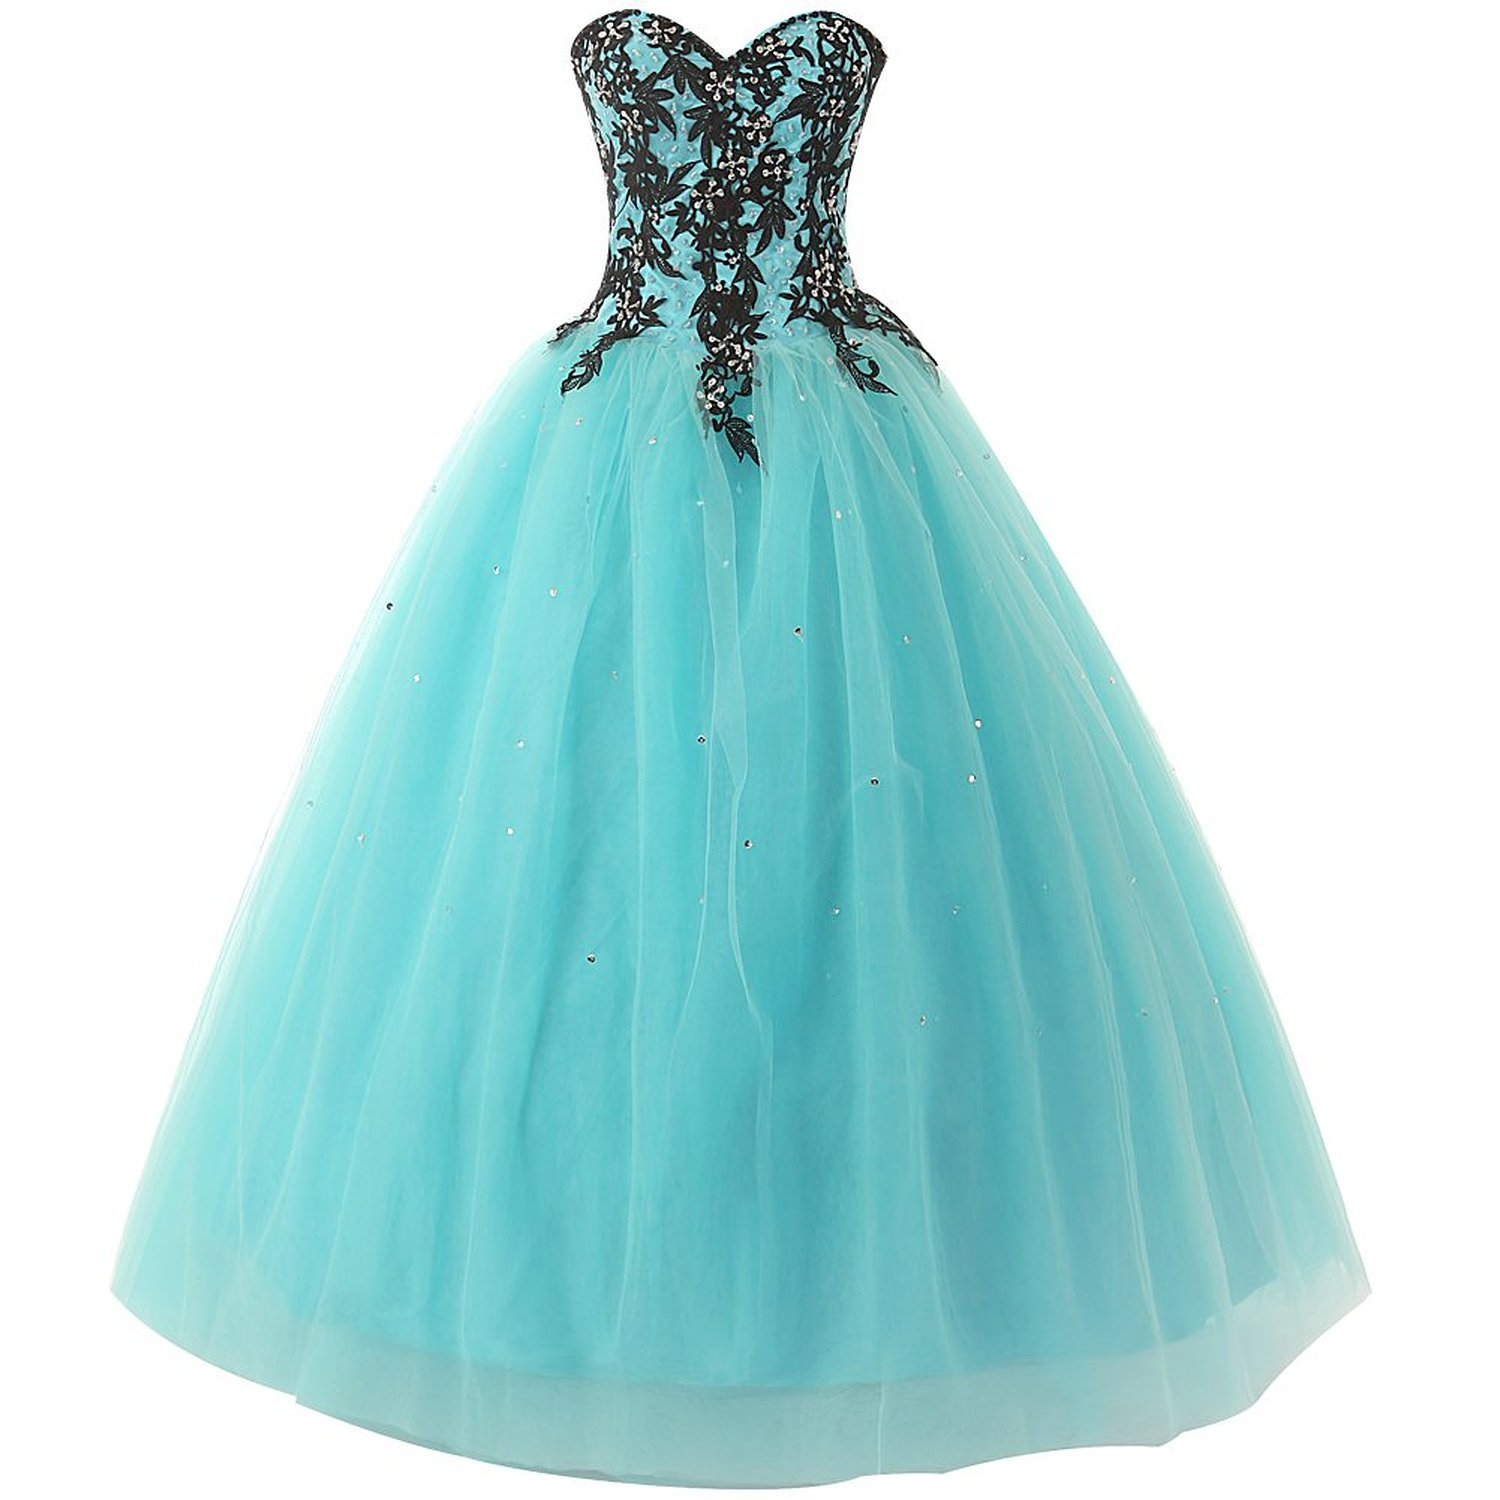 Kissbridal Women S Appliques Tulle Ball Evening Gown Prom